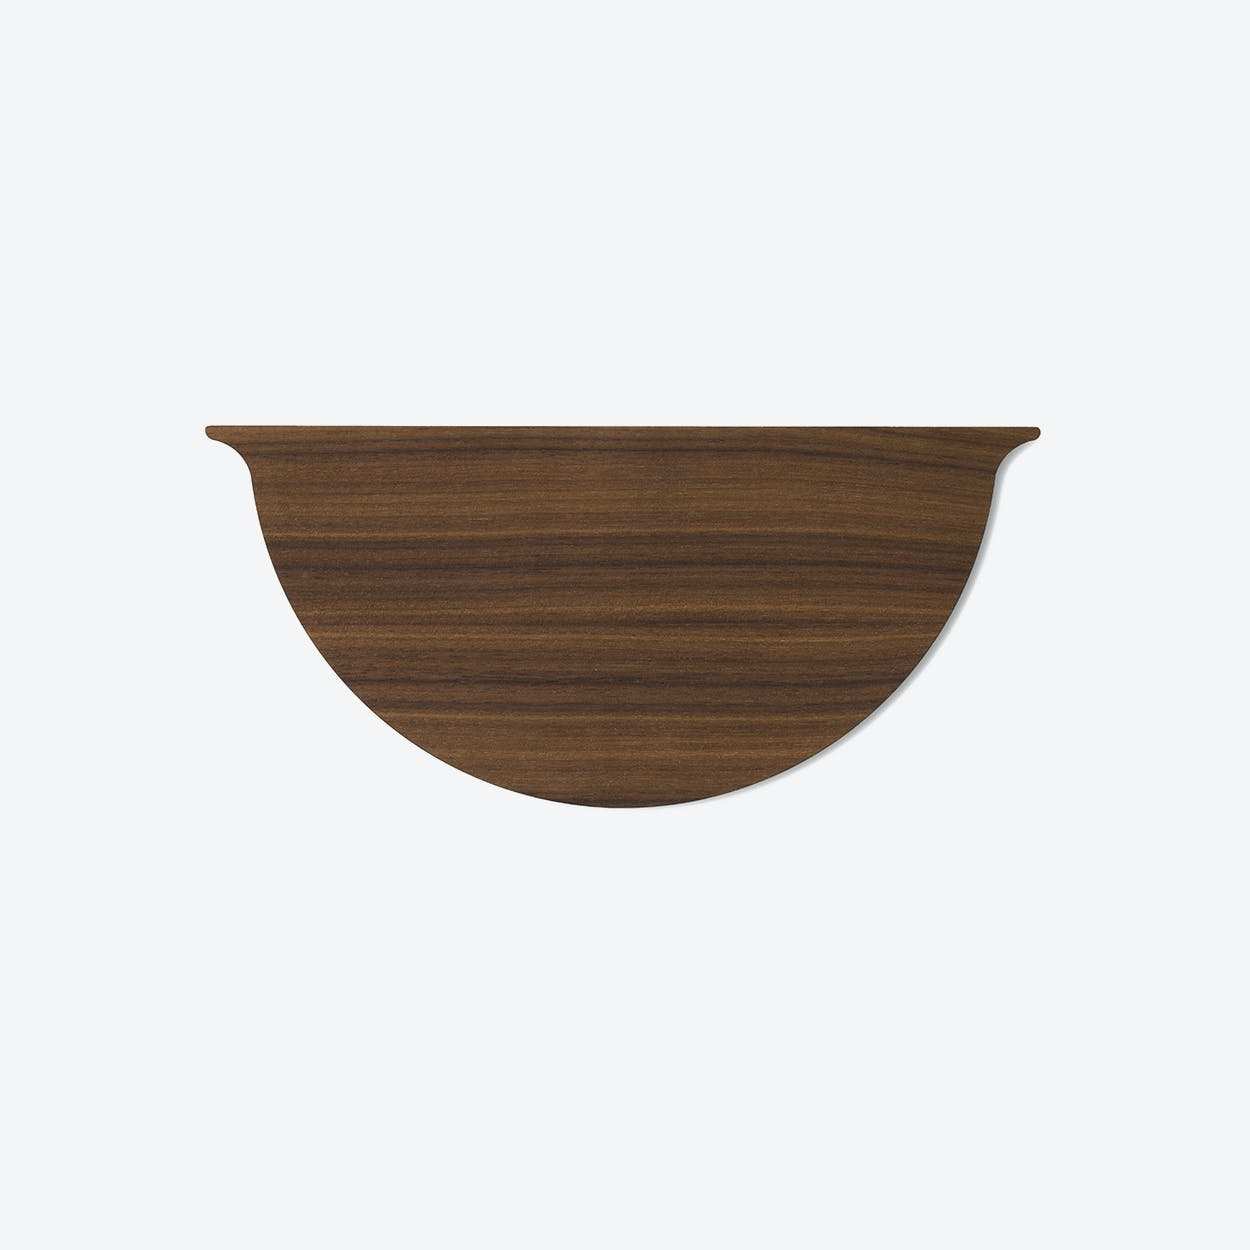 Wall Planter Lid in Walnut